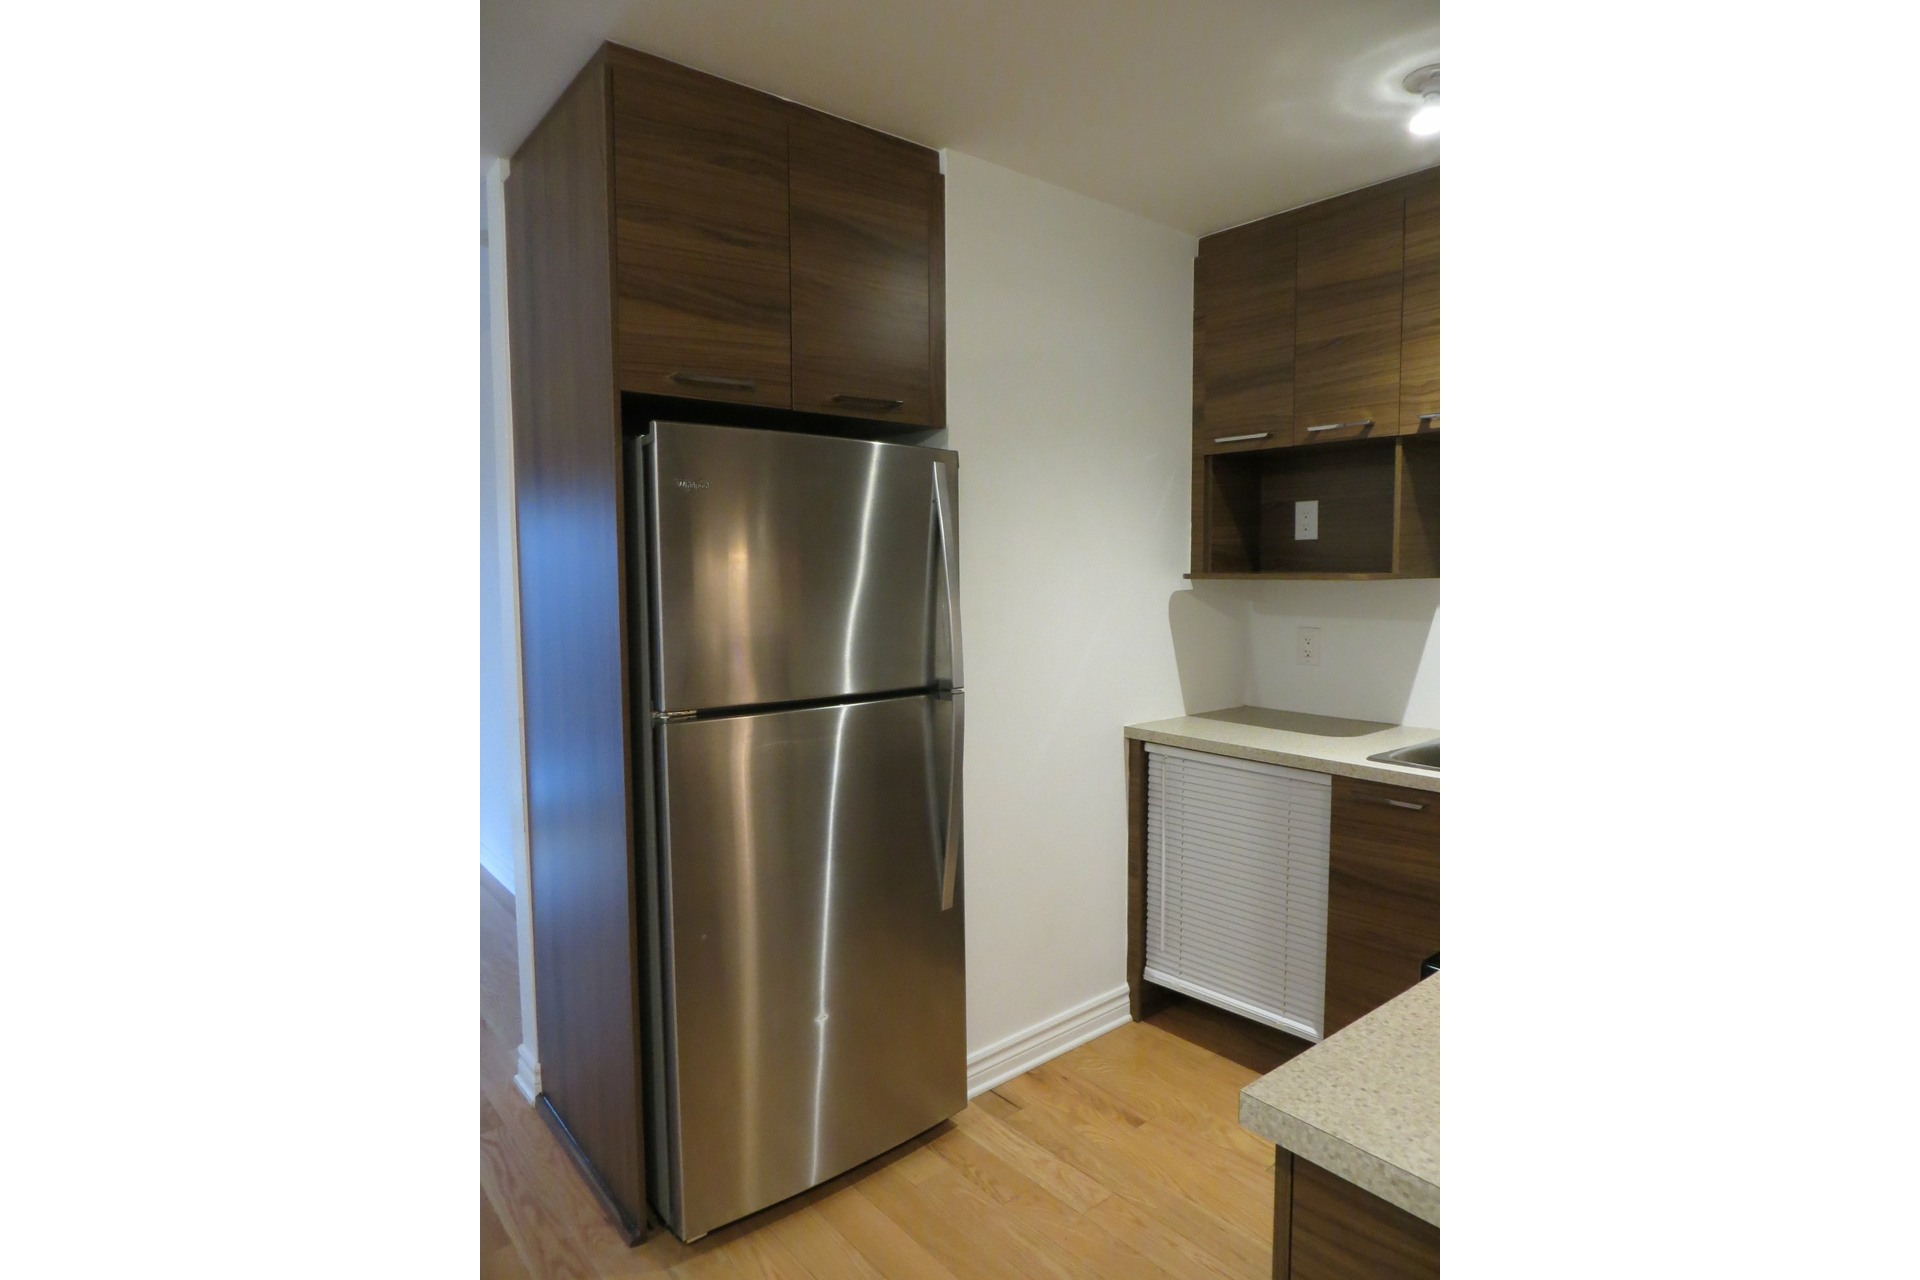 image 15 - Apartment For rent Laval-des-Rapides Laval  - 5 rooms